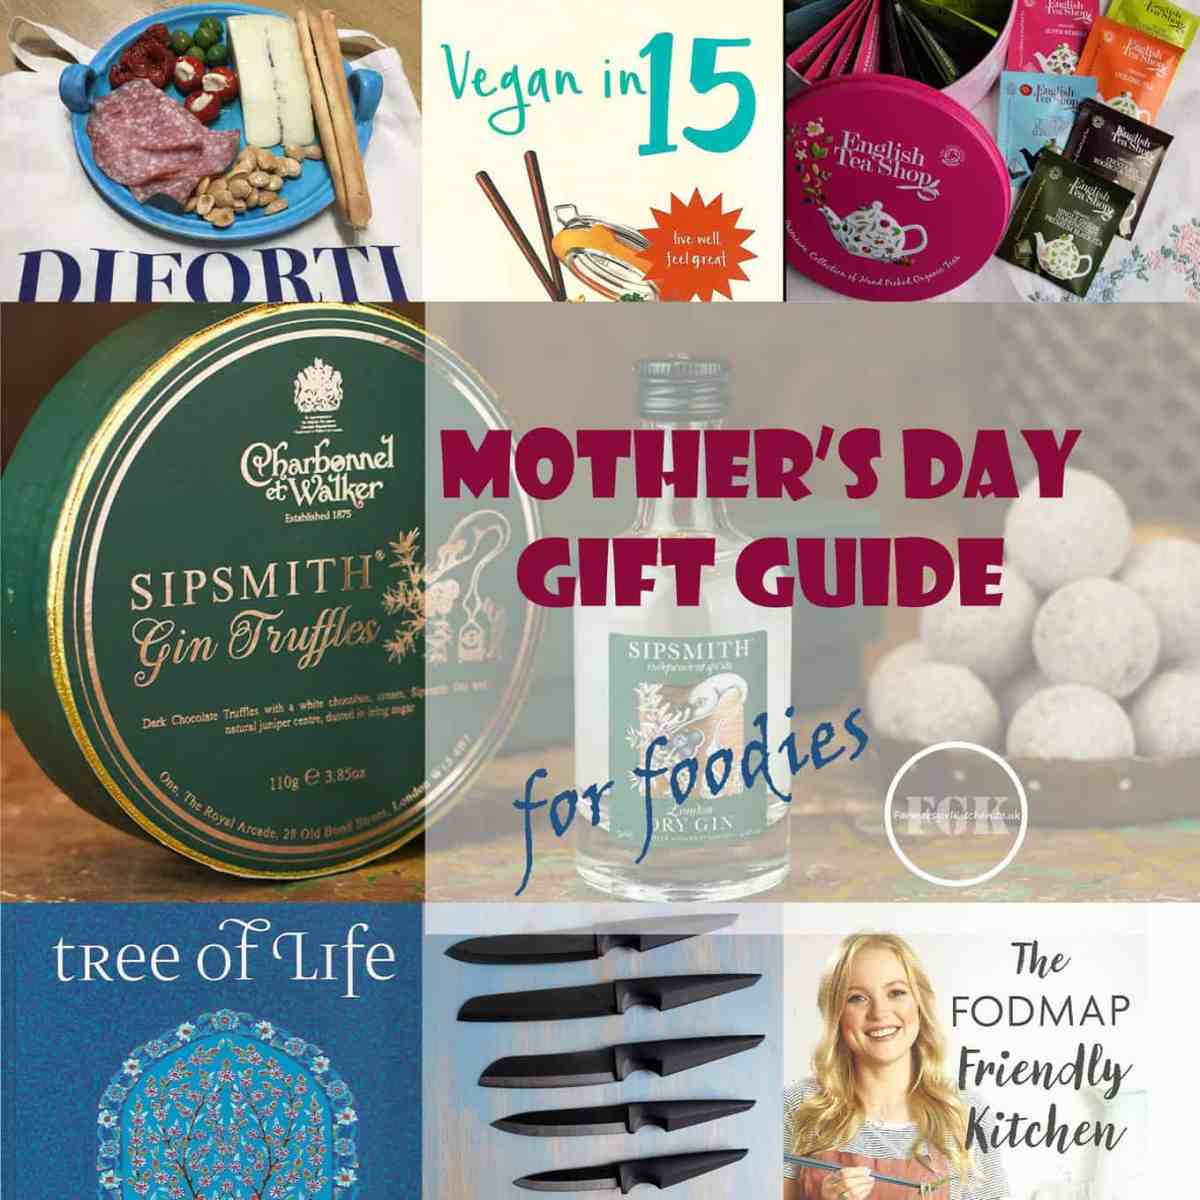 Mother's Day Gift Guide and a Giveaway